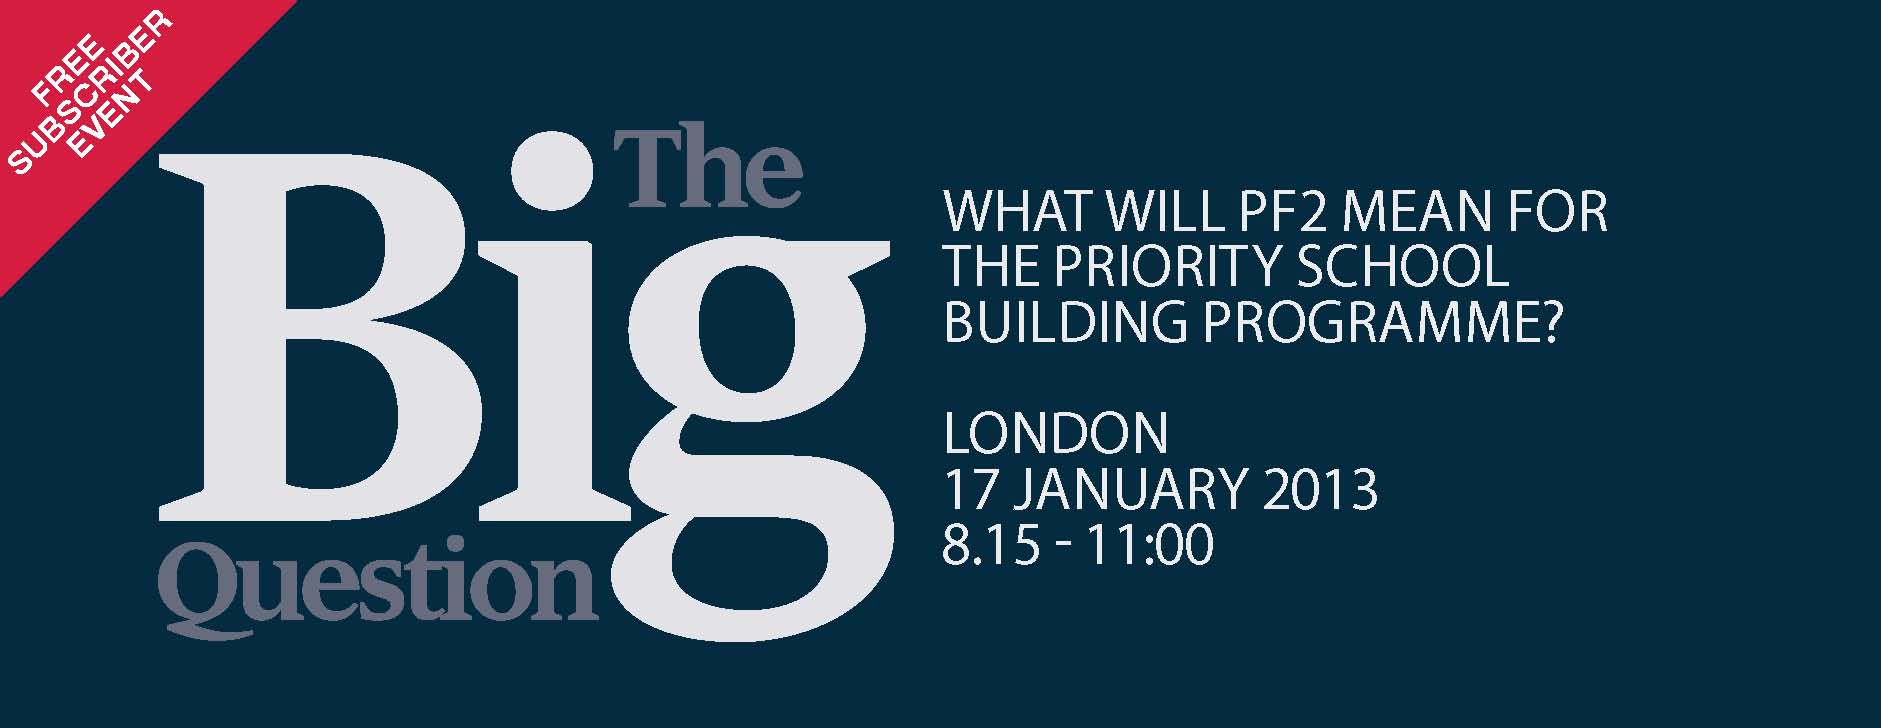 The Big Question - What will PF2 mean for the Priority School Building programme?